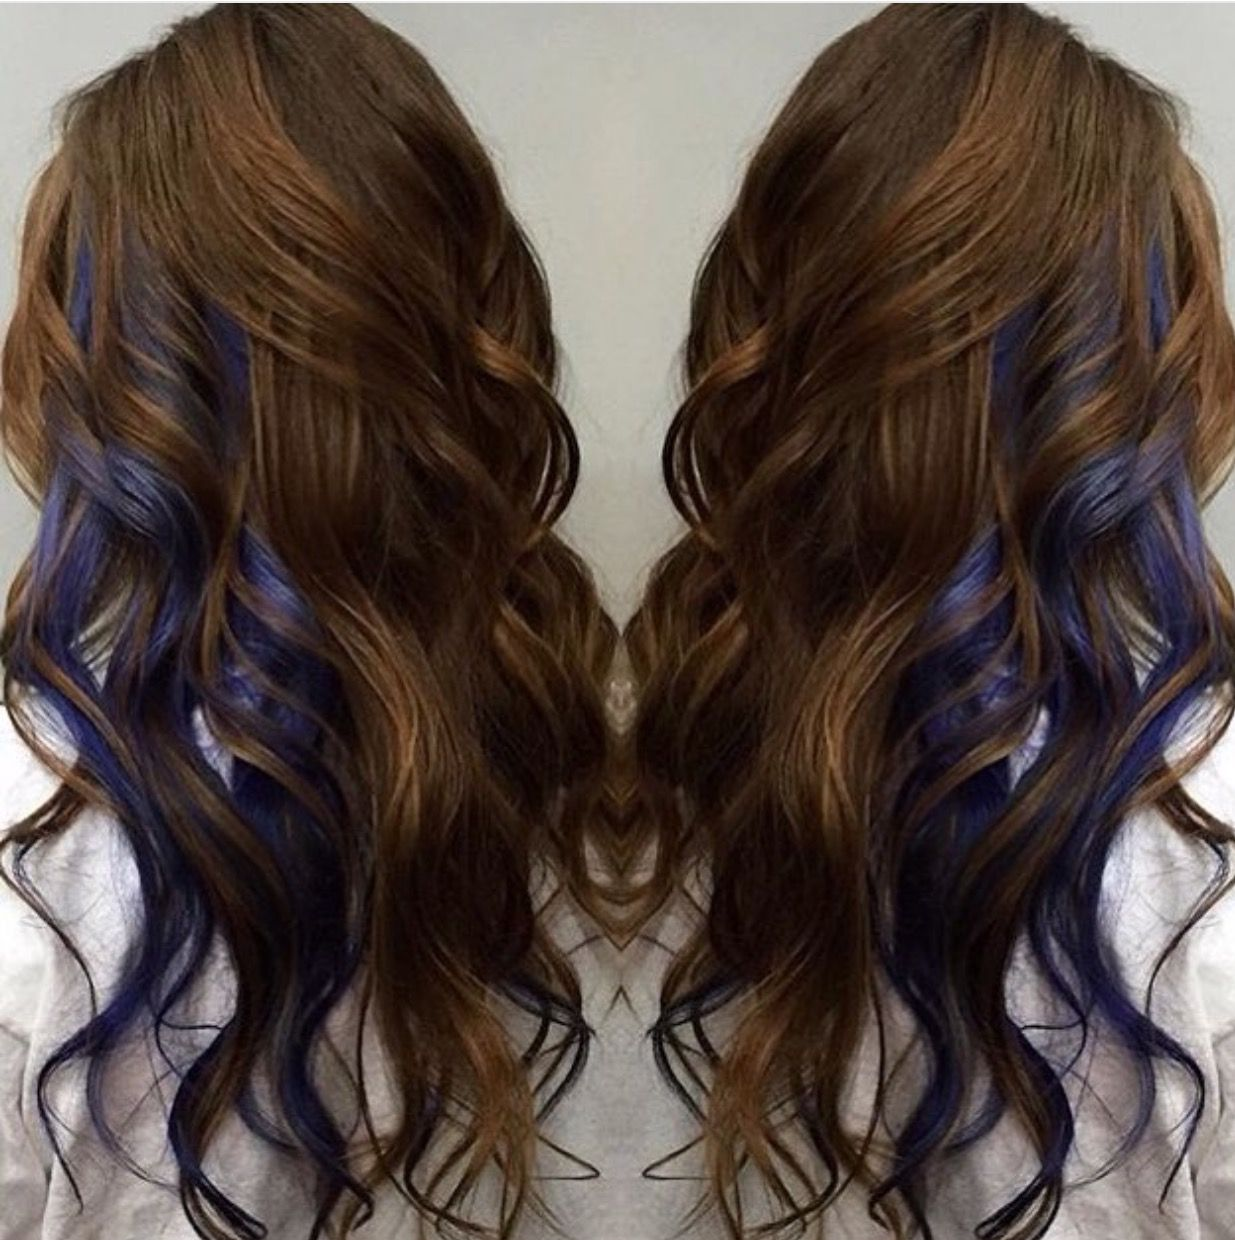 Brown with peek a boo blue streaks  colored hair  Pinterest  Blue